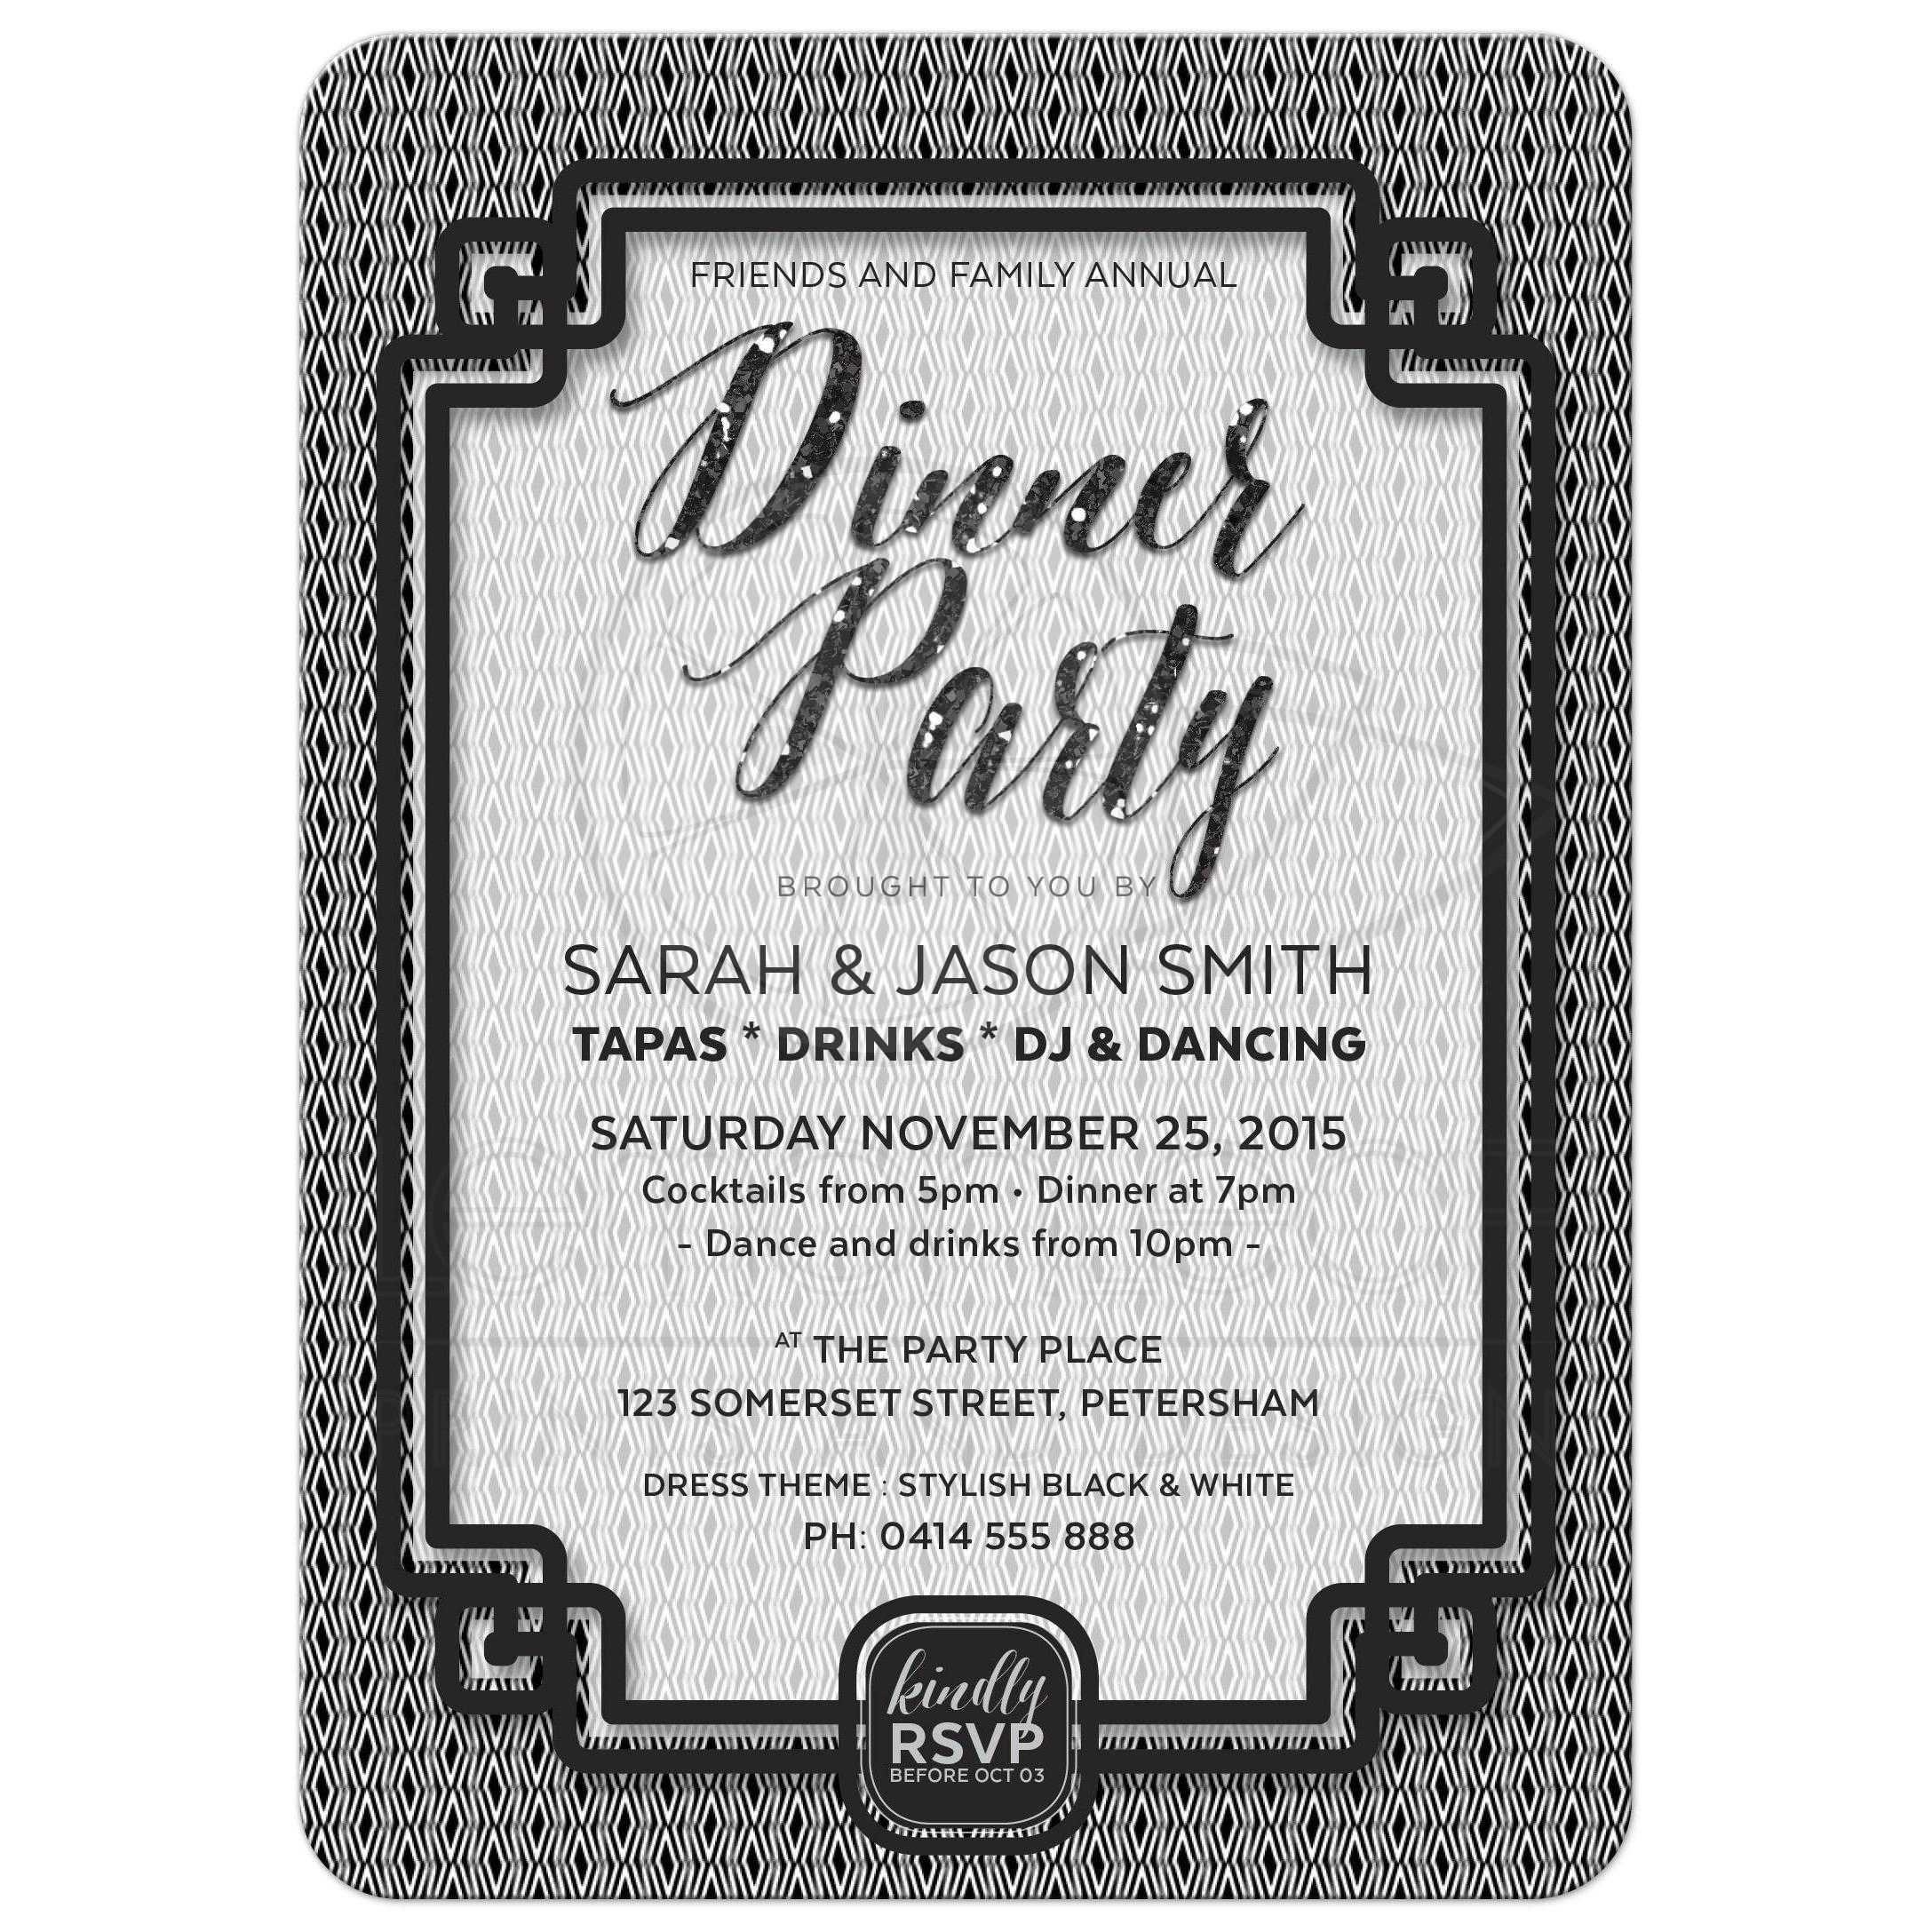 Black and white dinner party invitation simply stylish 01 black and white dinner party invitation black and white dinner party invitation stopboris Choice Image